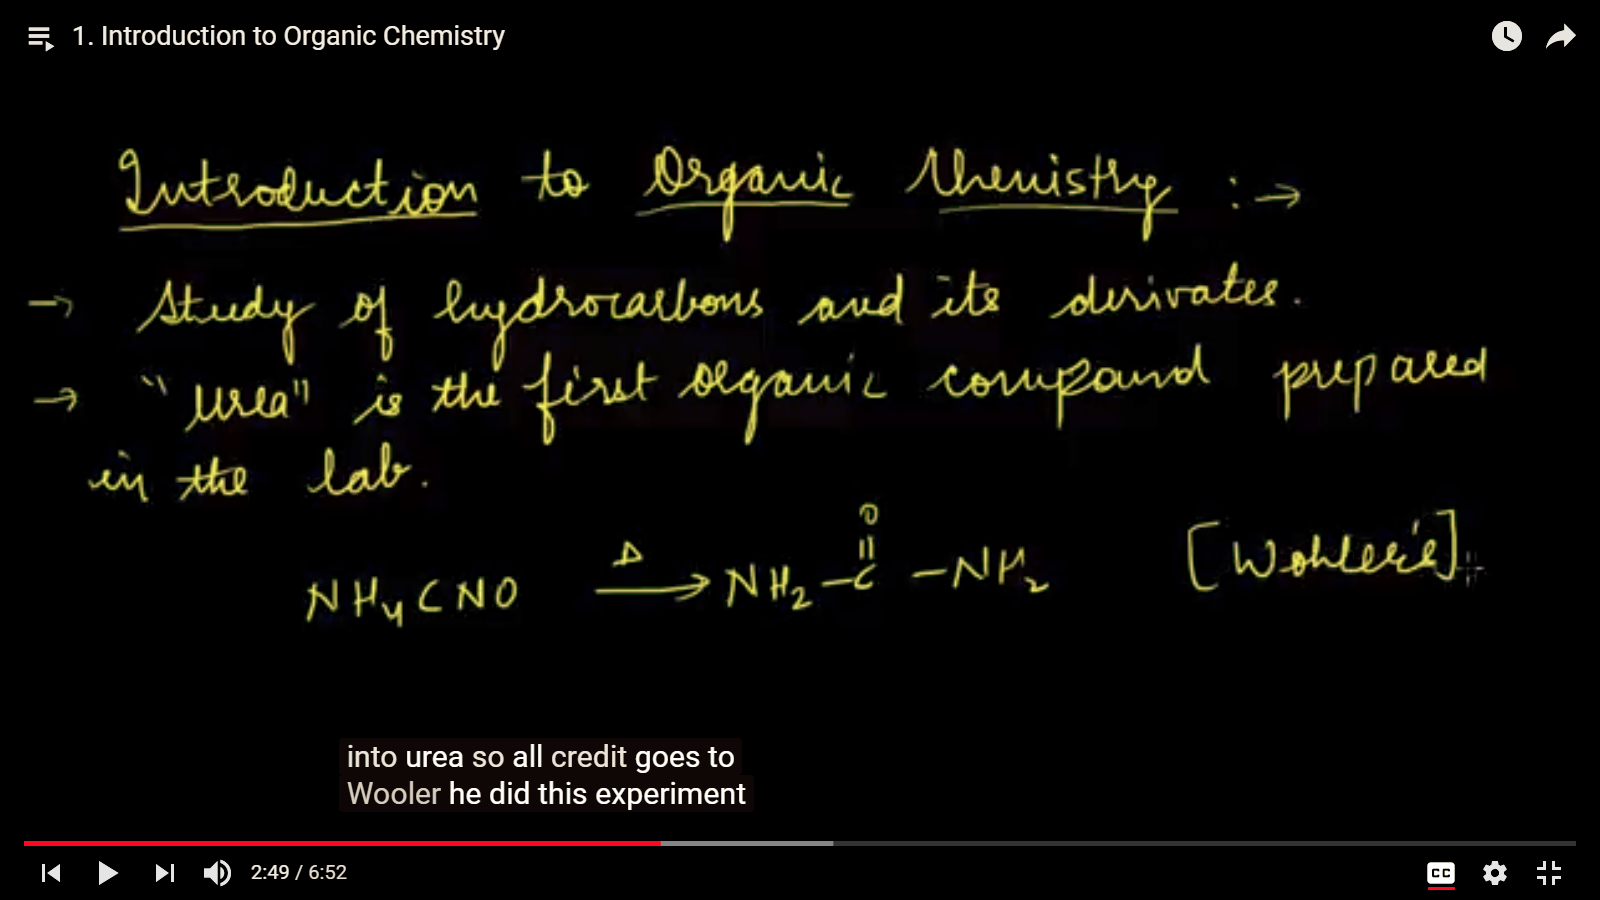 Can anyone share organic chemistry notes for IIT JEE? - Quora